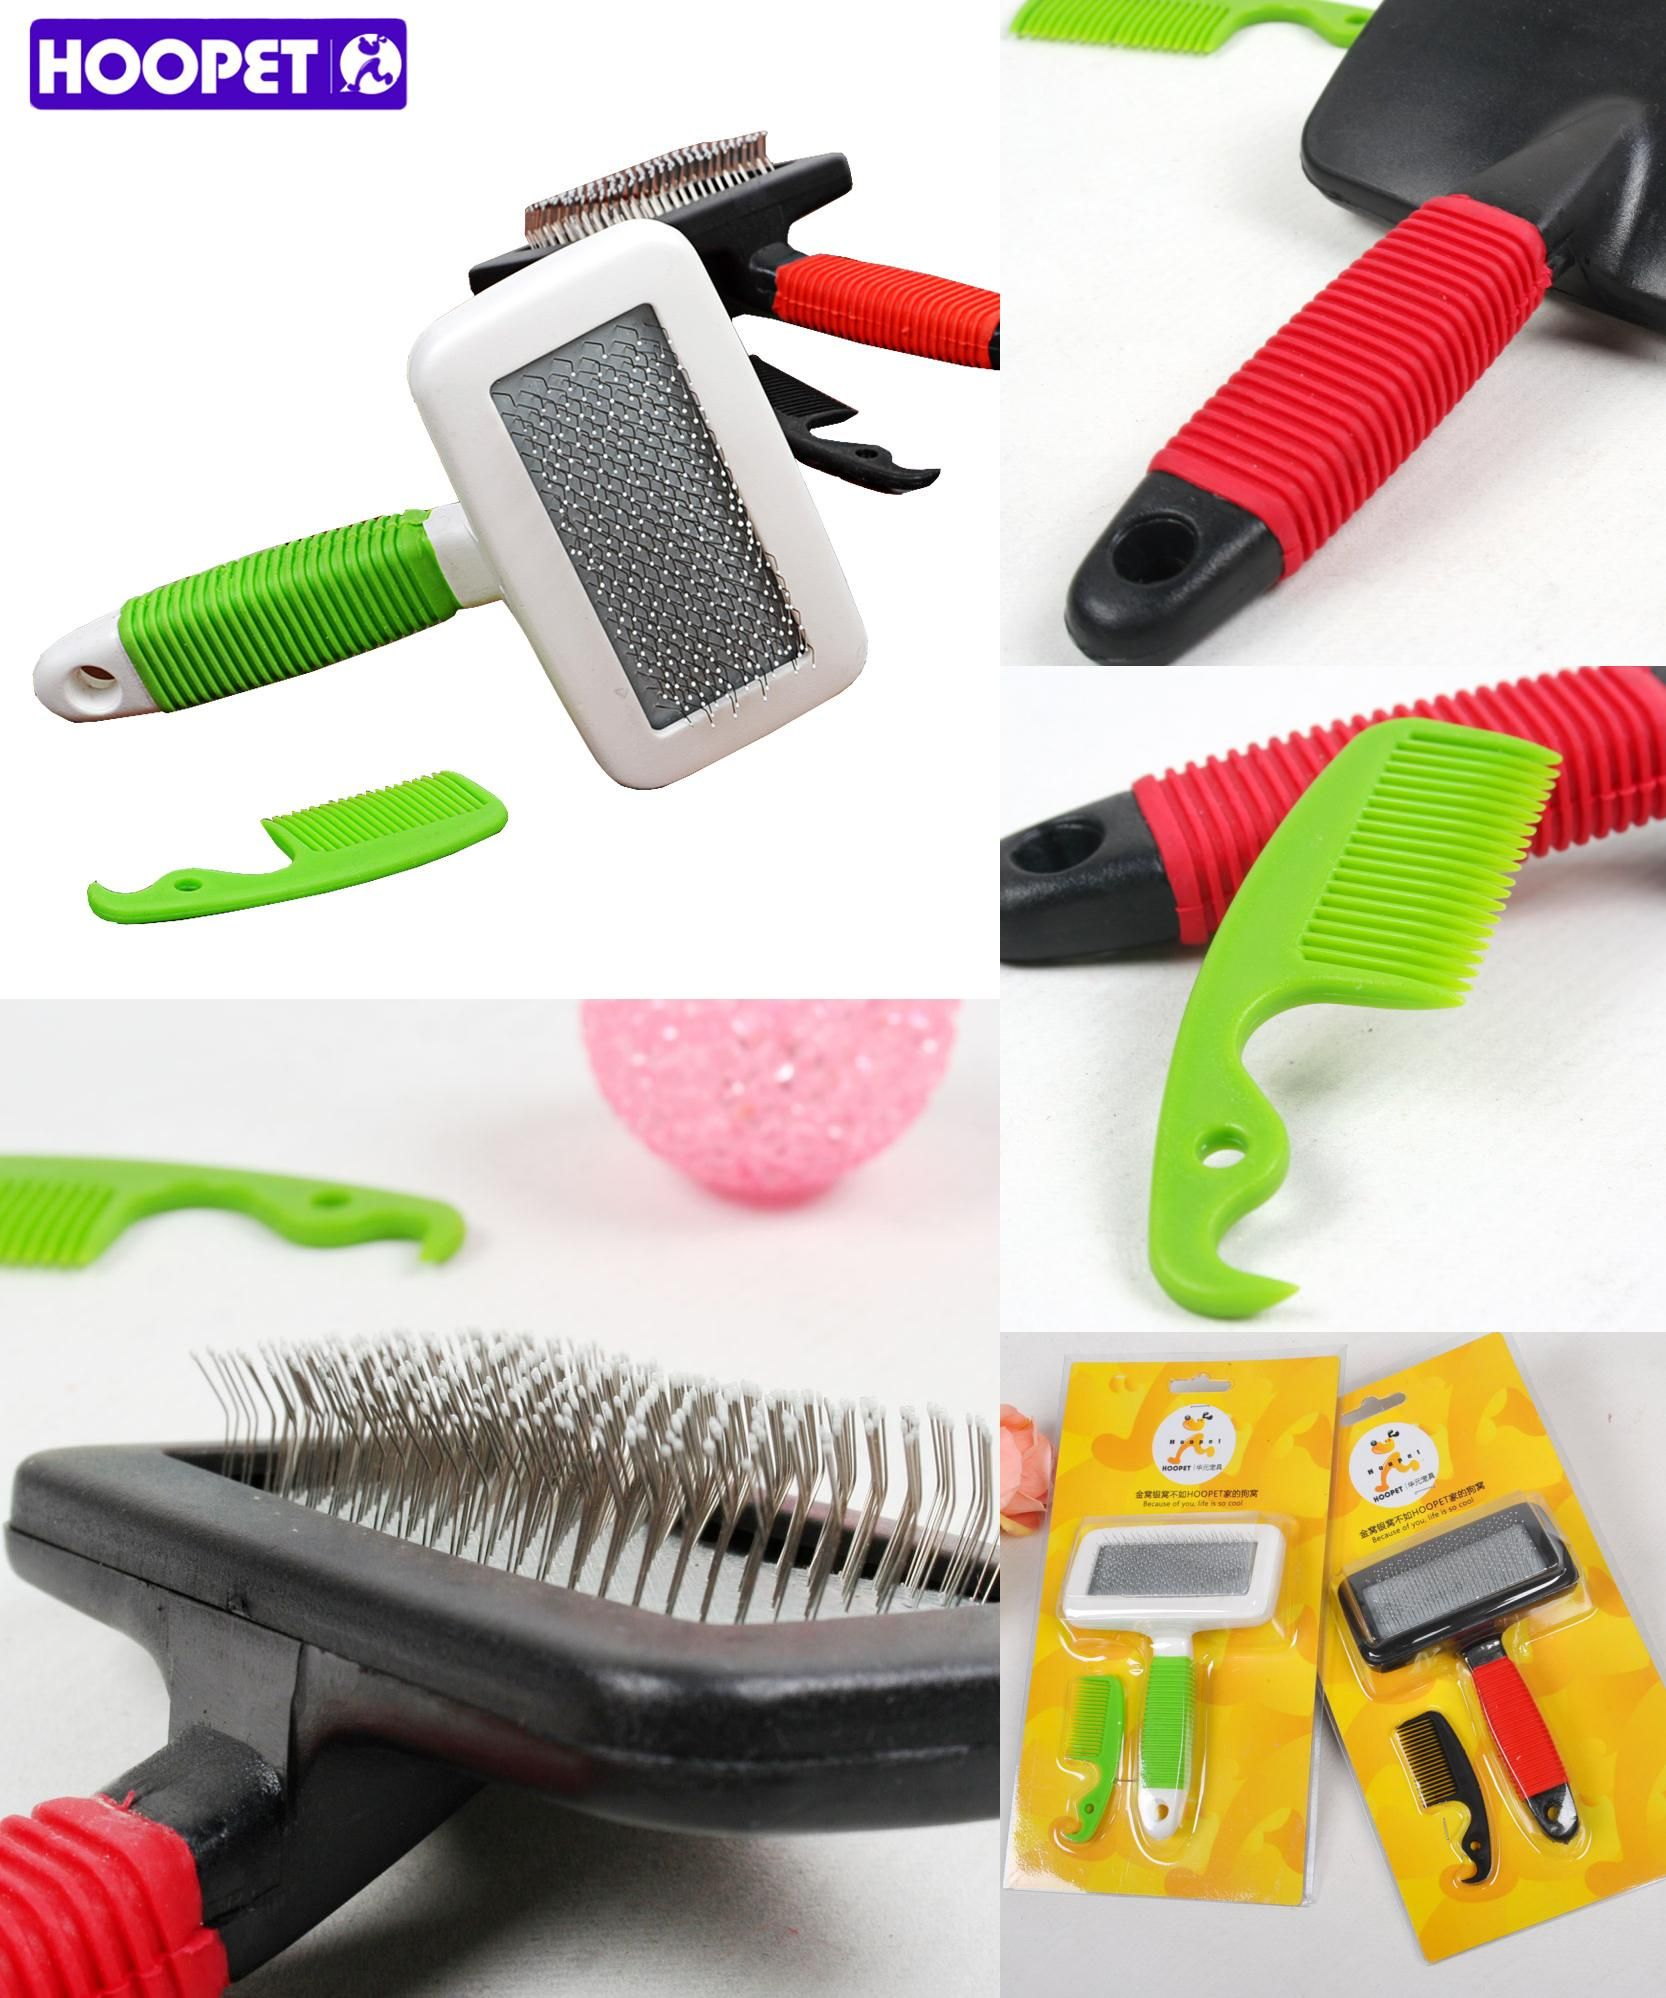 Visit To Buy Dog Grooming Tools Comb Brush Needle Pet Cat Hair Clipper Attachment Dogs Red Green Factory Det Grooming Tools Dog Grooming Tools Dog Grooming